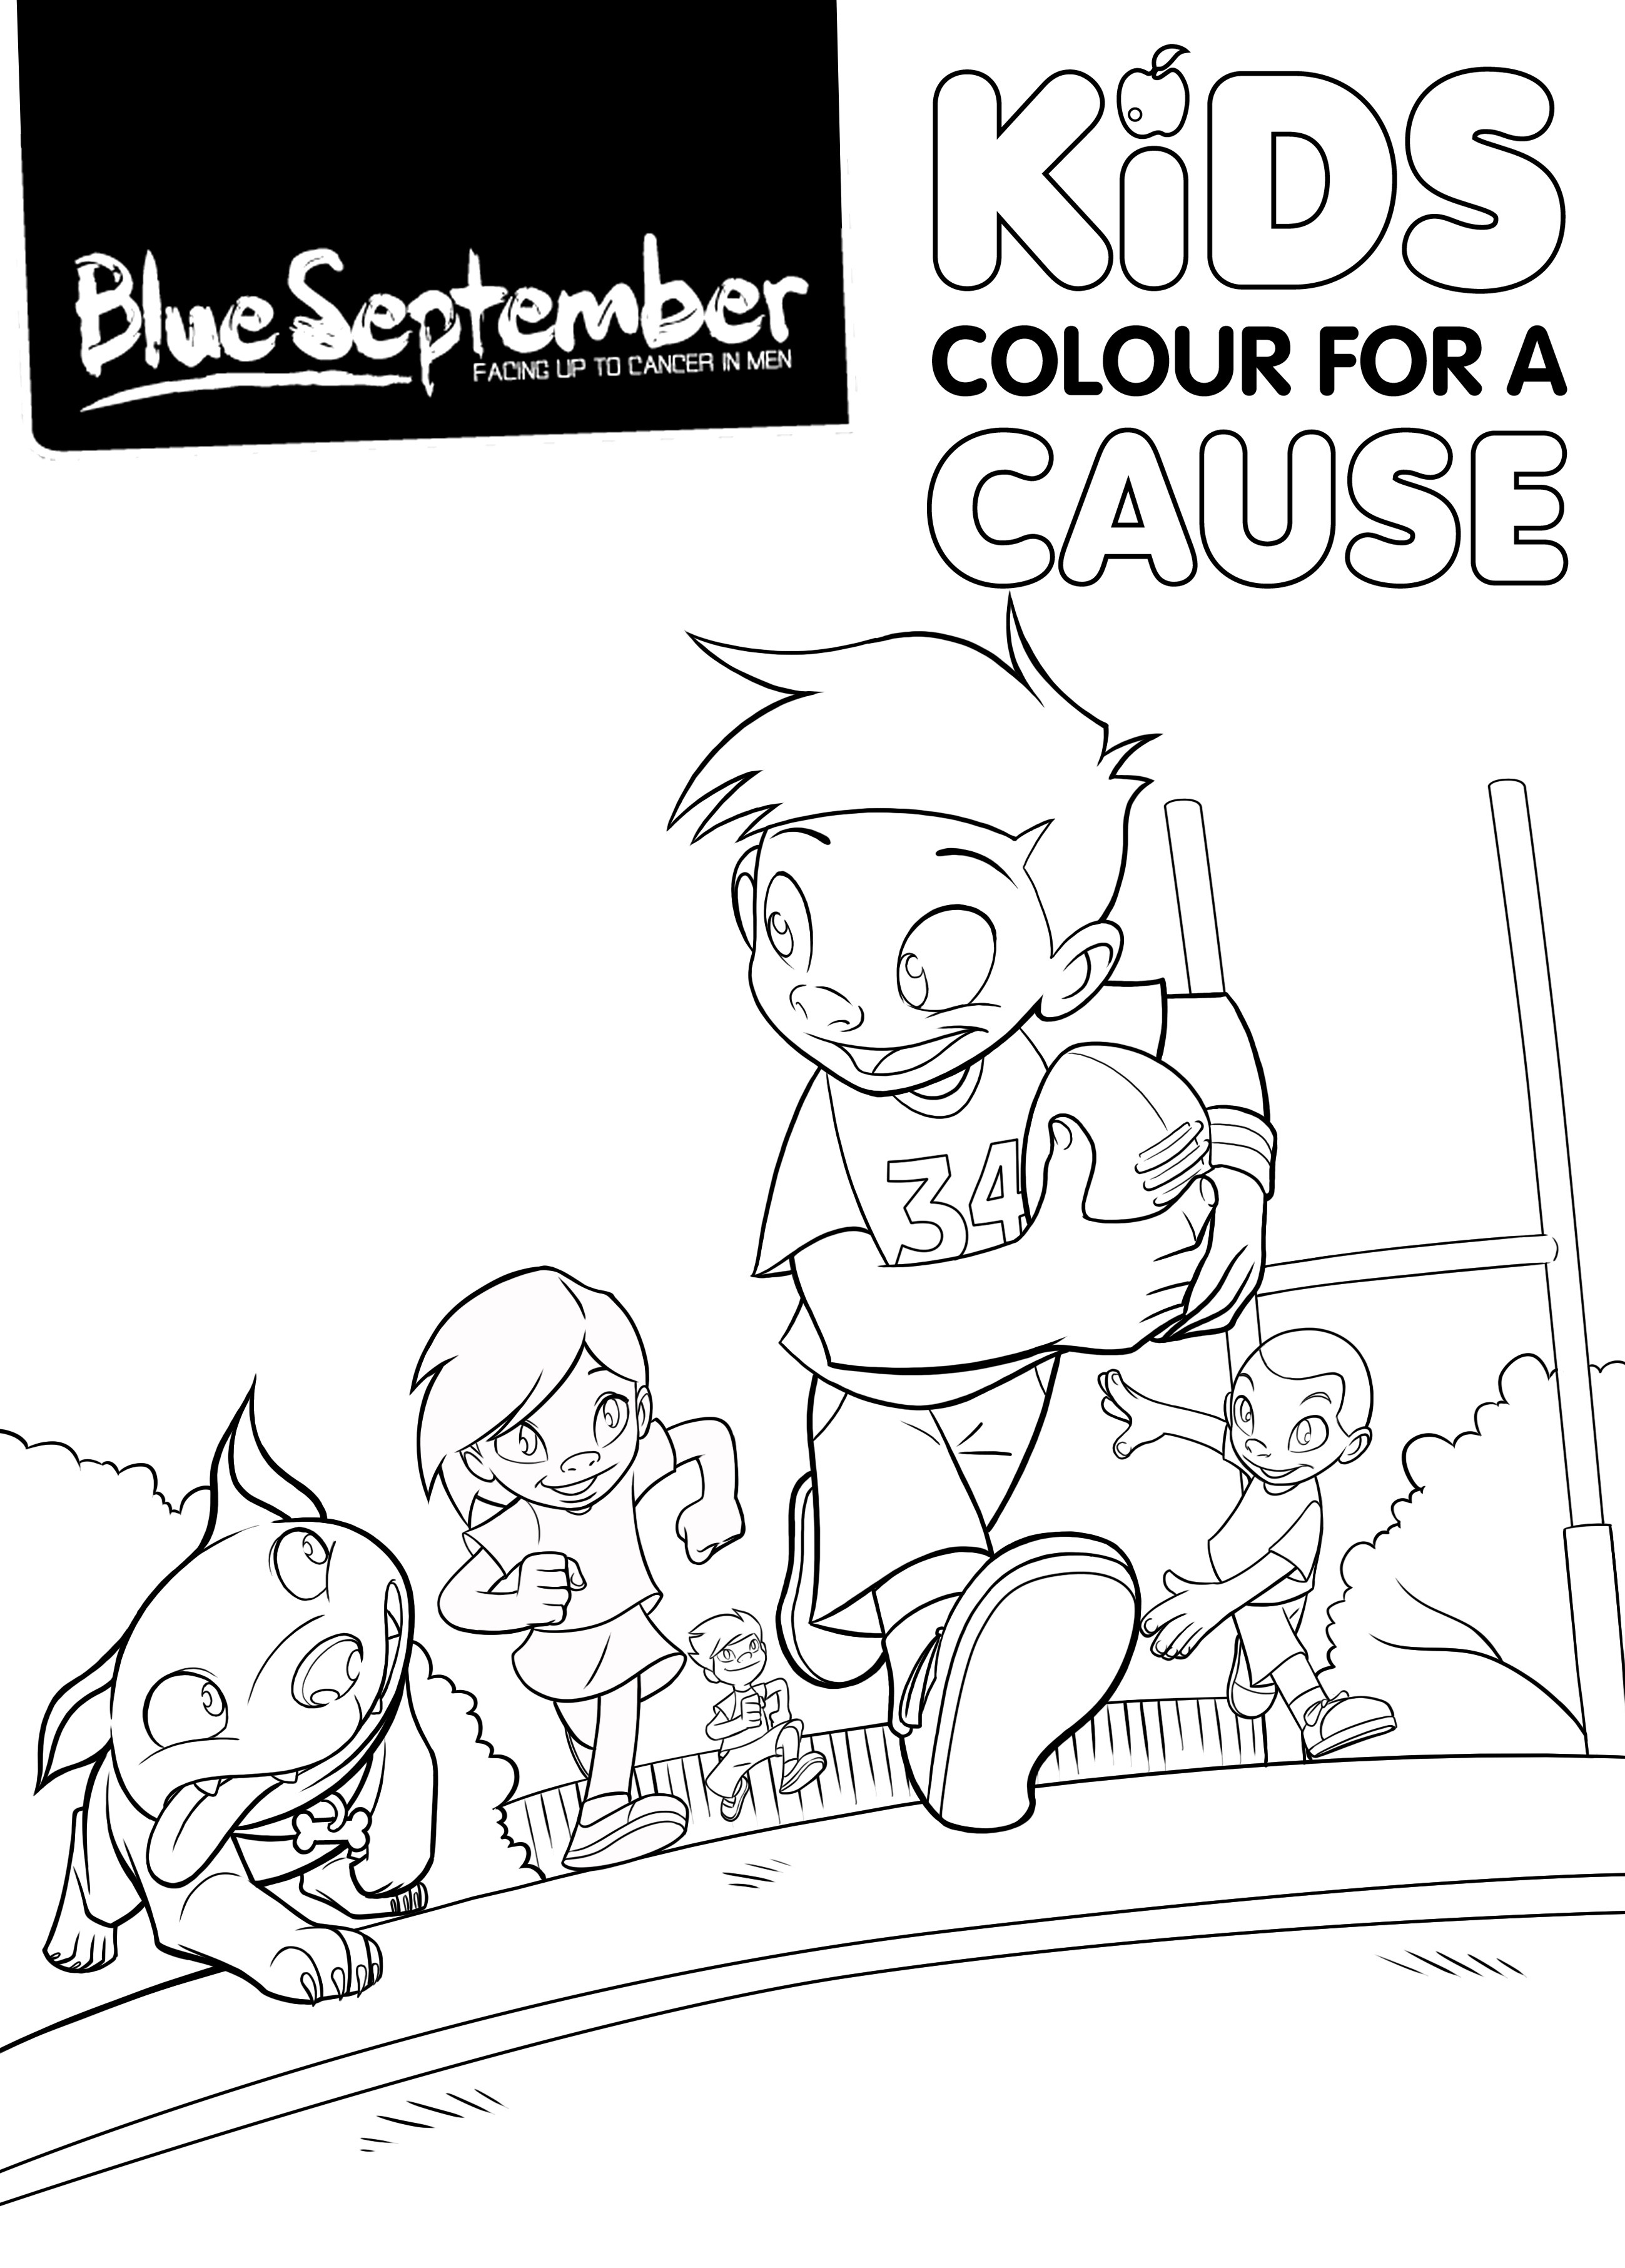 Kids Colour for a Cause 1: Colouring In Page